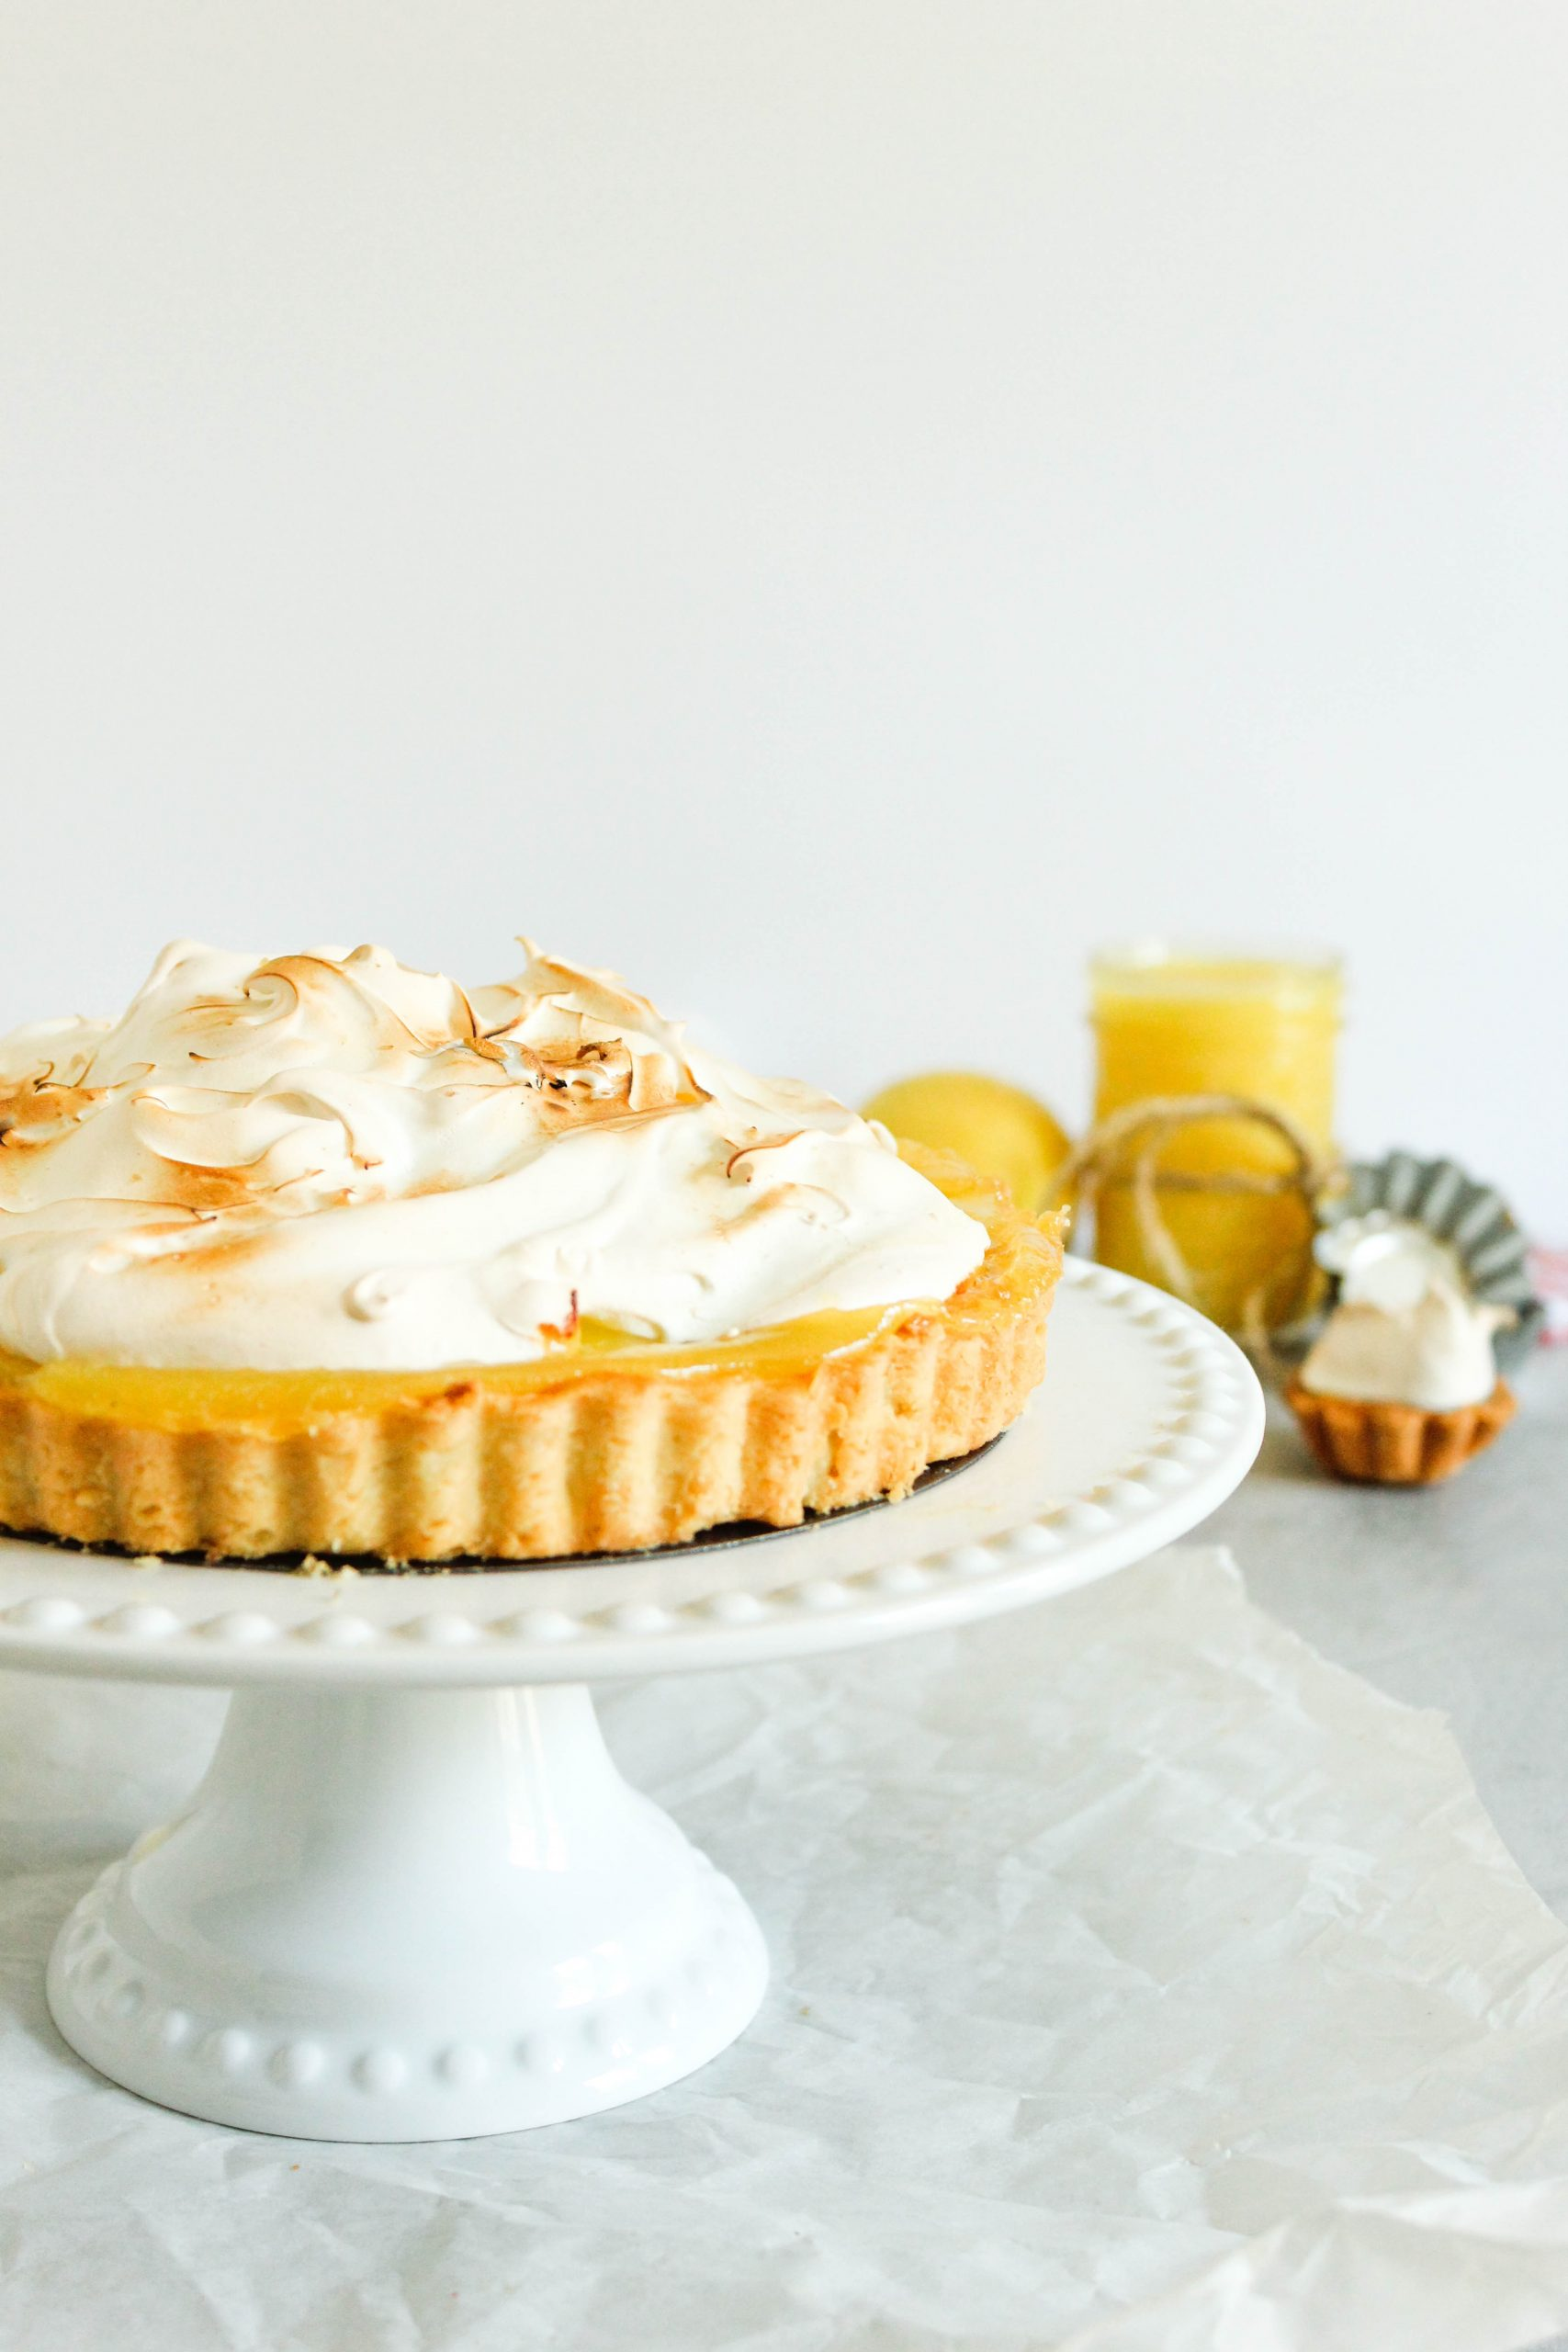 sweet tart pastry filled with lemon curd and topped with a toasted meringue for lemon meringue pie